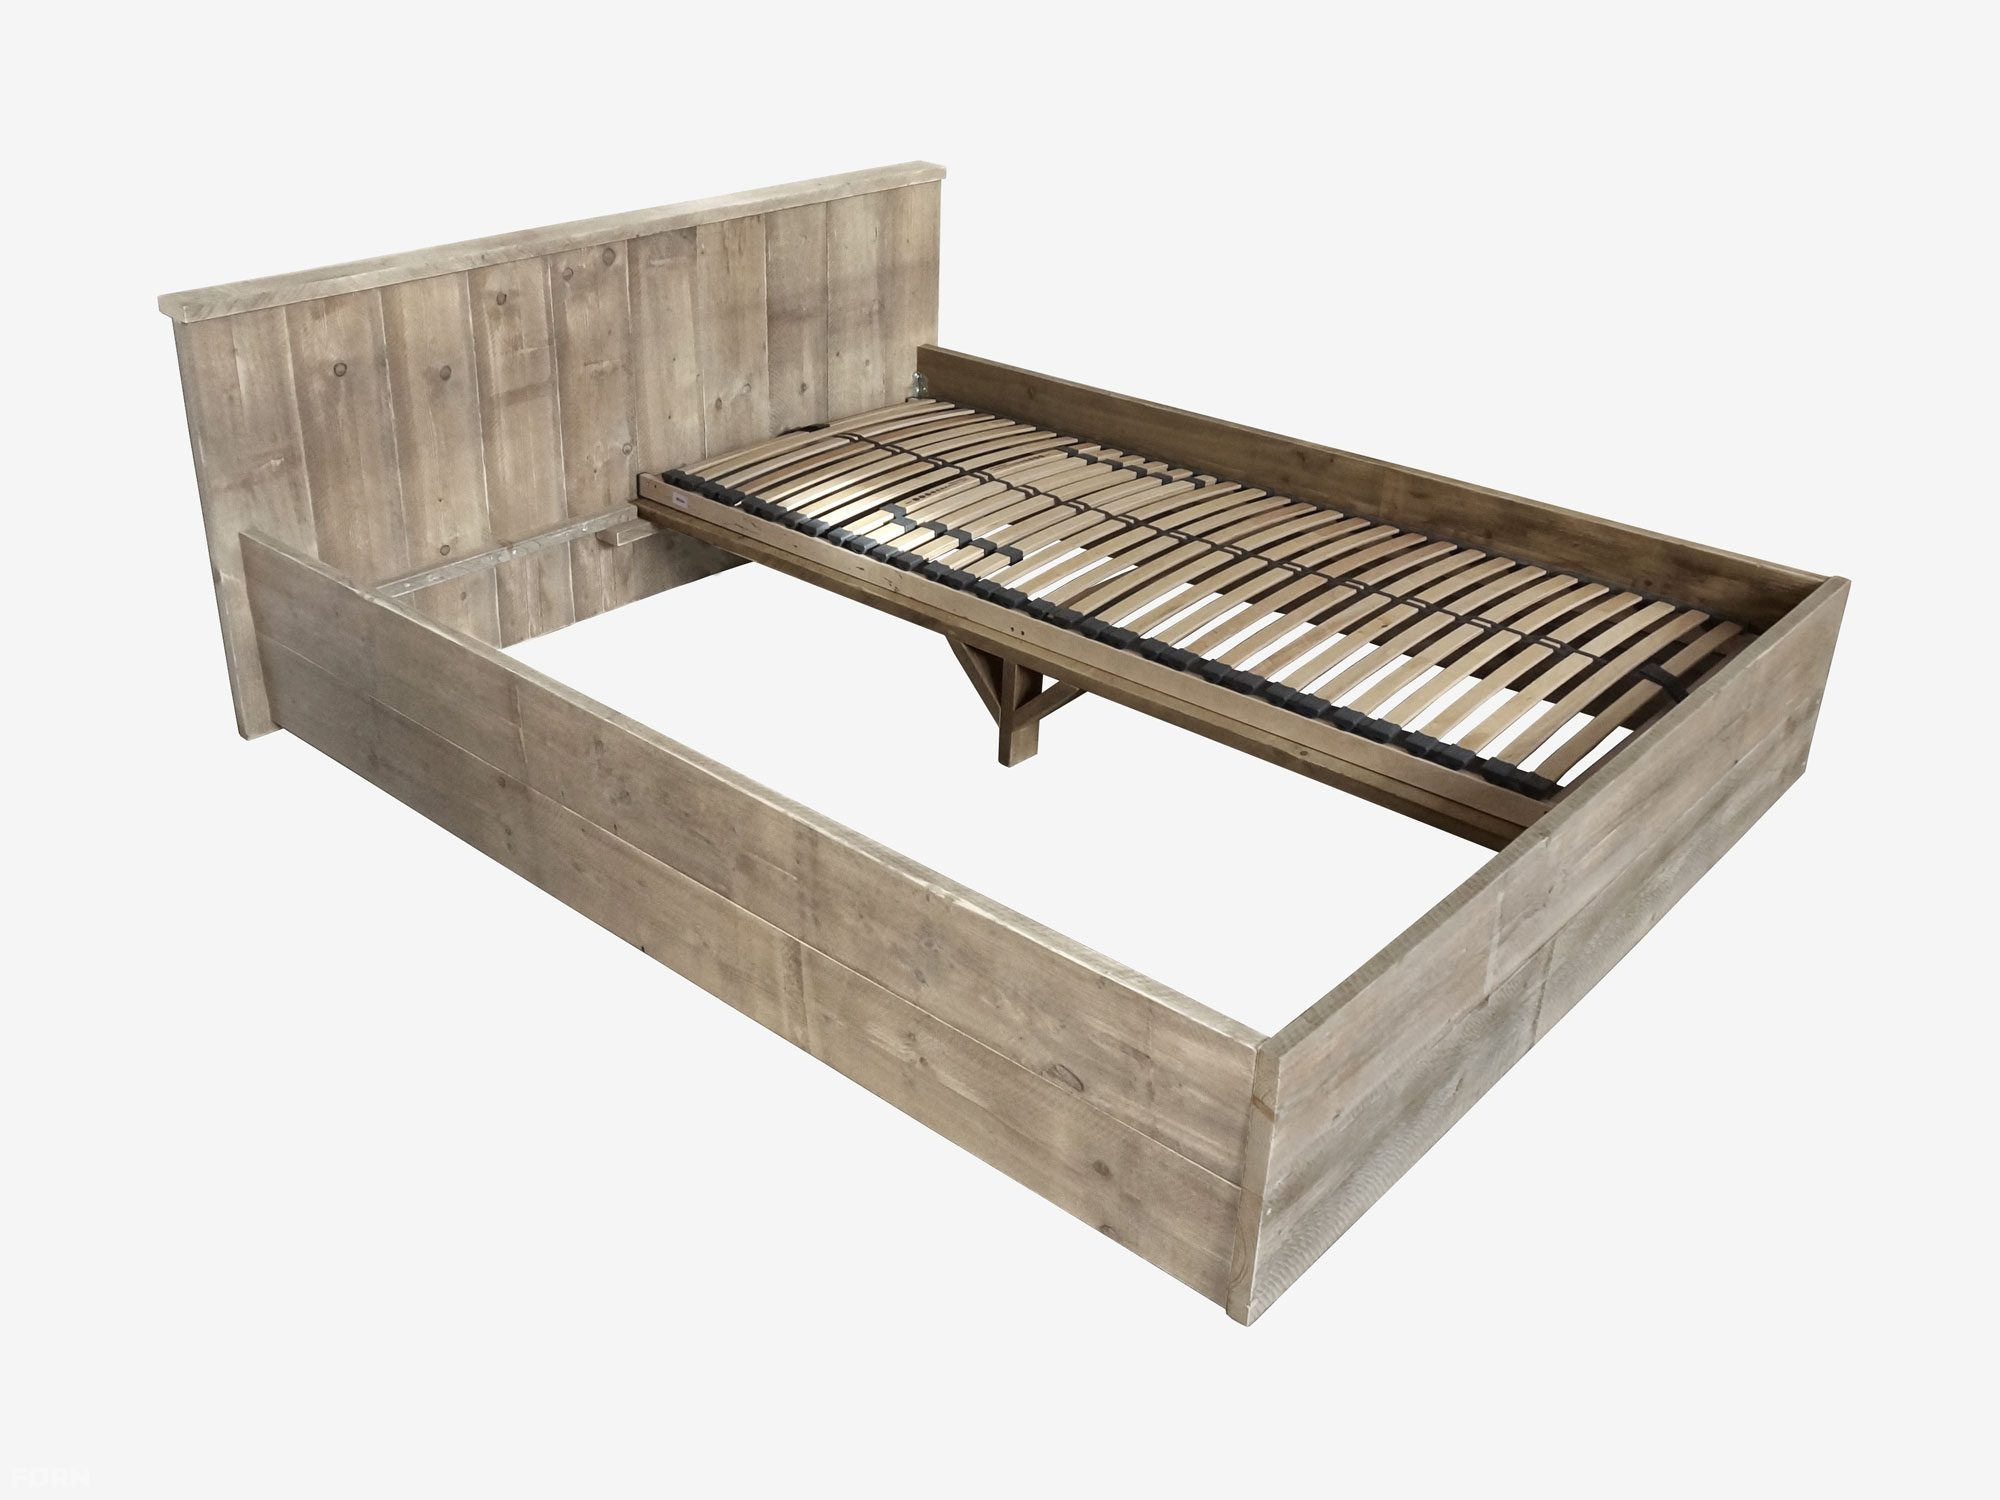 New Steigerhouten bed Anemone - lattenbodem en matras optioneel - op @IX23